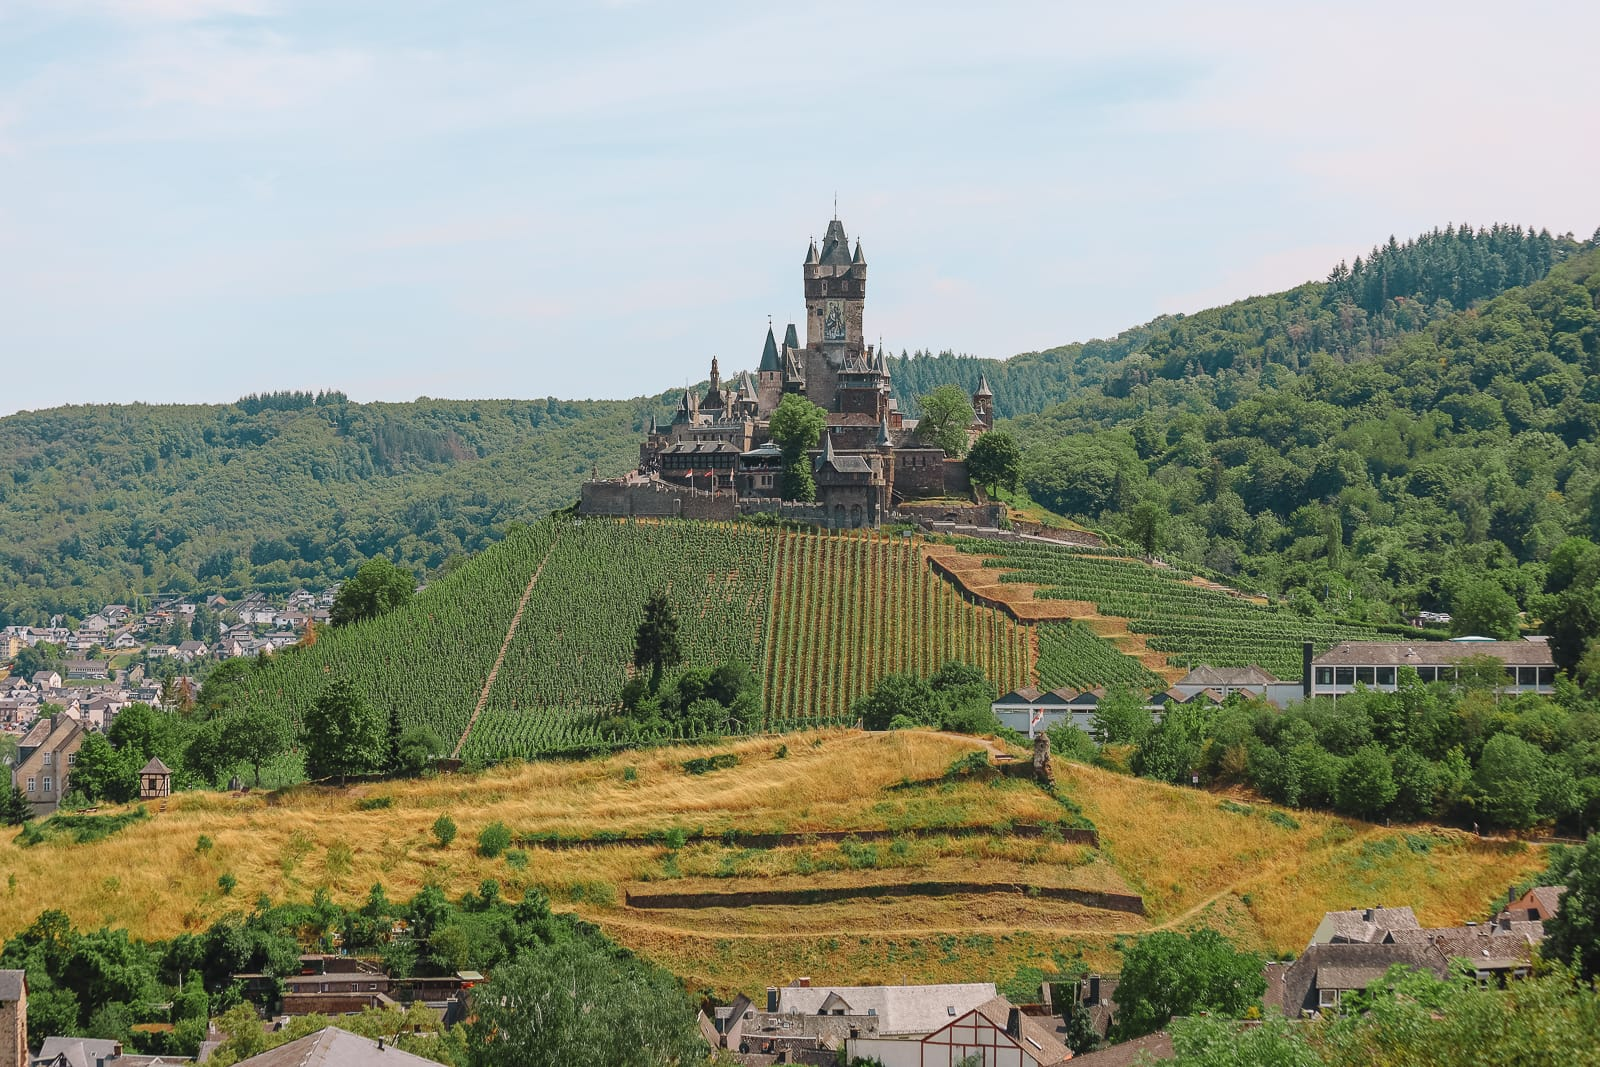 The Gorgeous Little Town Of Beilstein and The Amazing Eltz Castle In Germany (29)